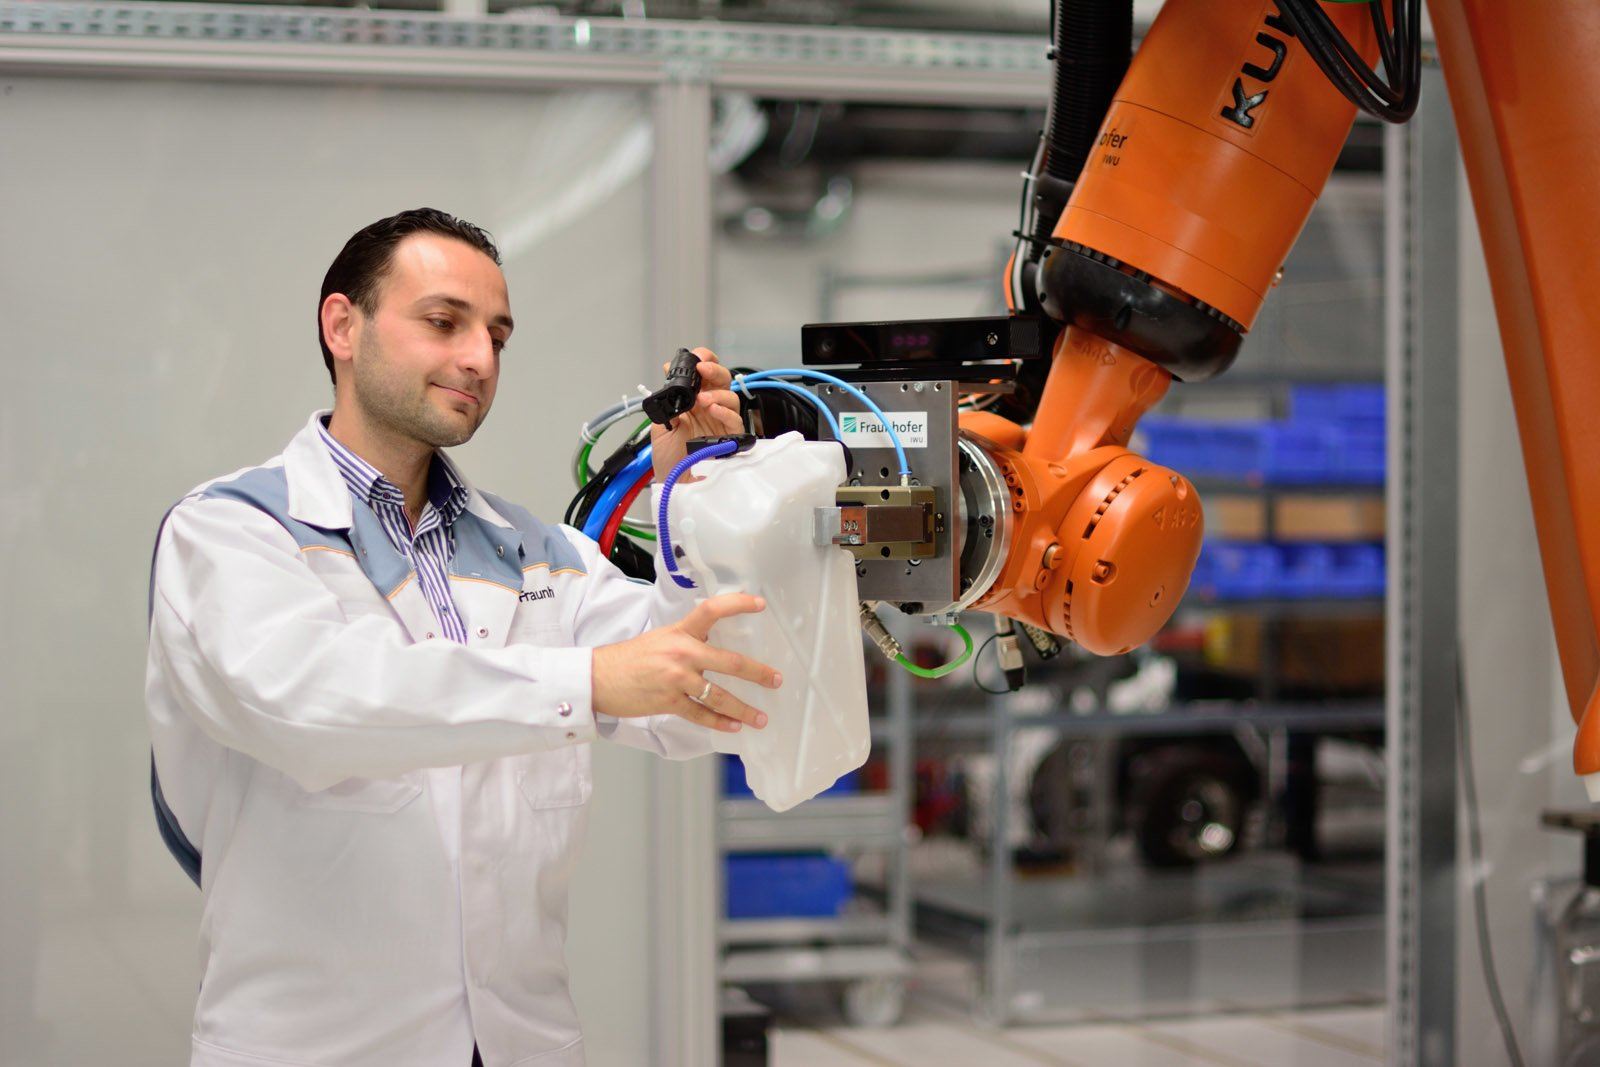 In many places where there are robots operating, they are under two zones: a safe zone and an unsafe zone. Robots can move quickly